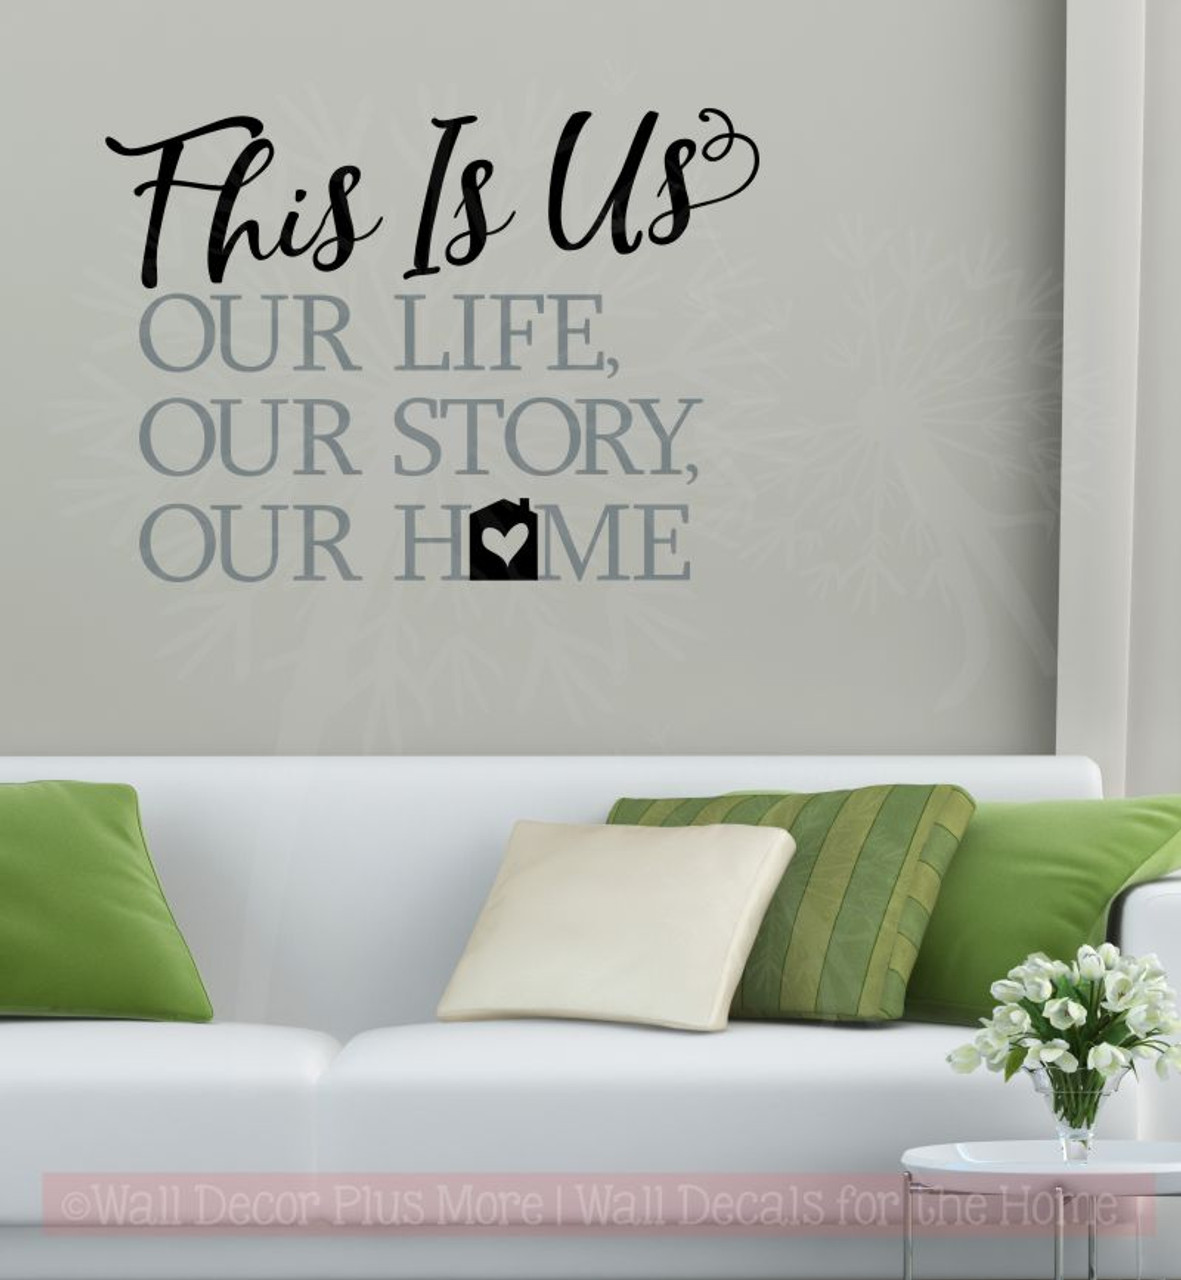 This is our home vinyl lettering decals home wall décor sticker quotes